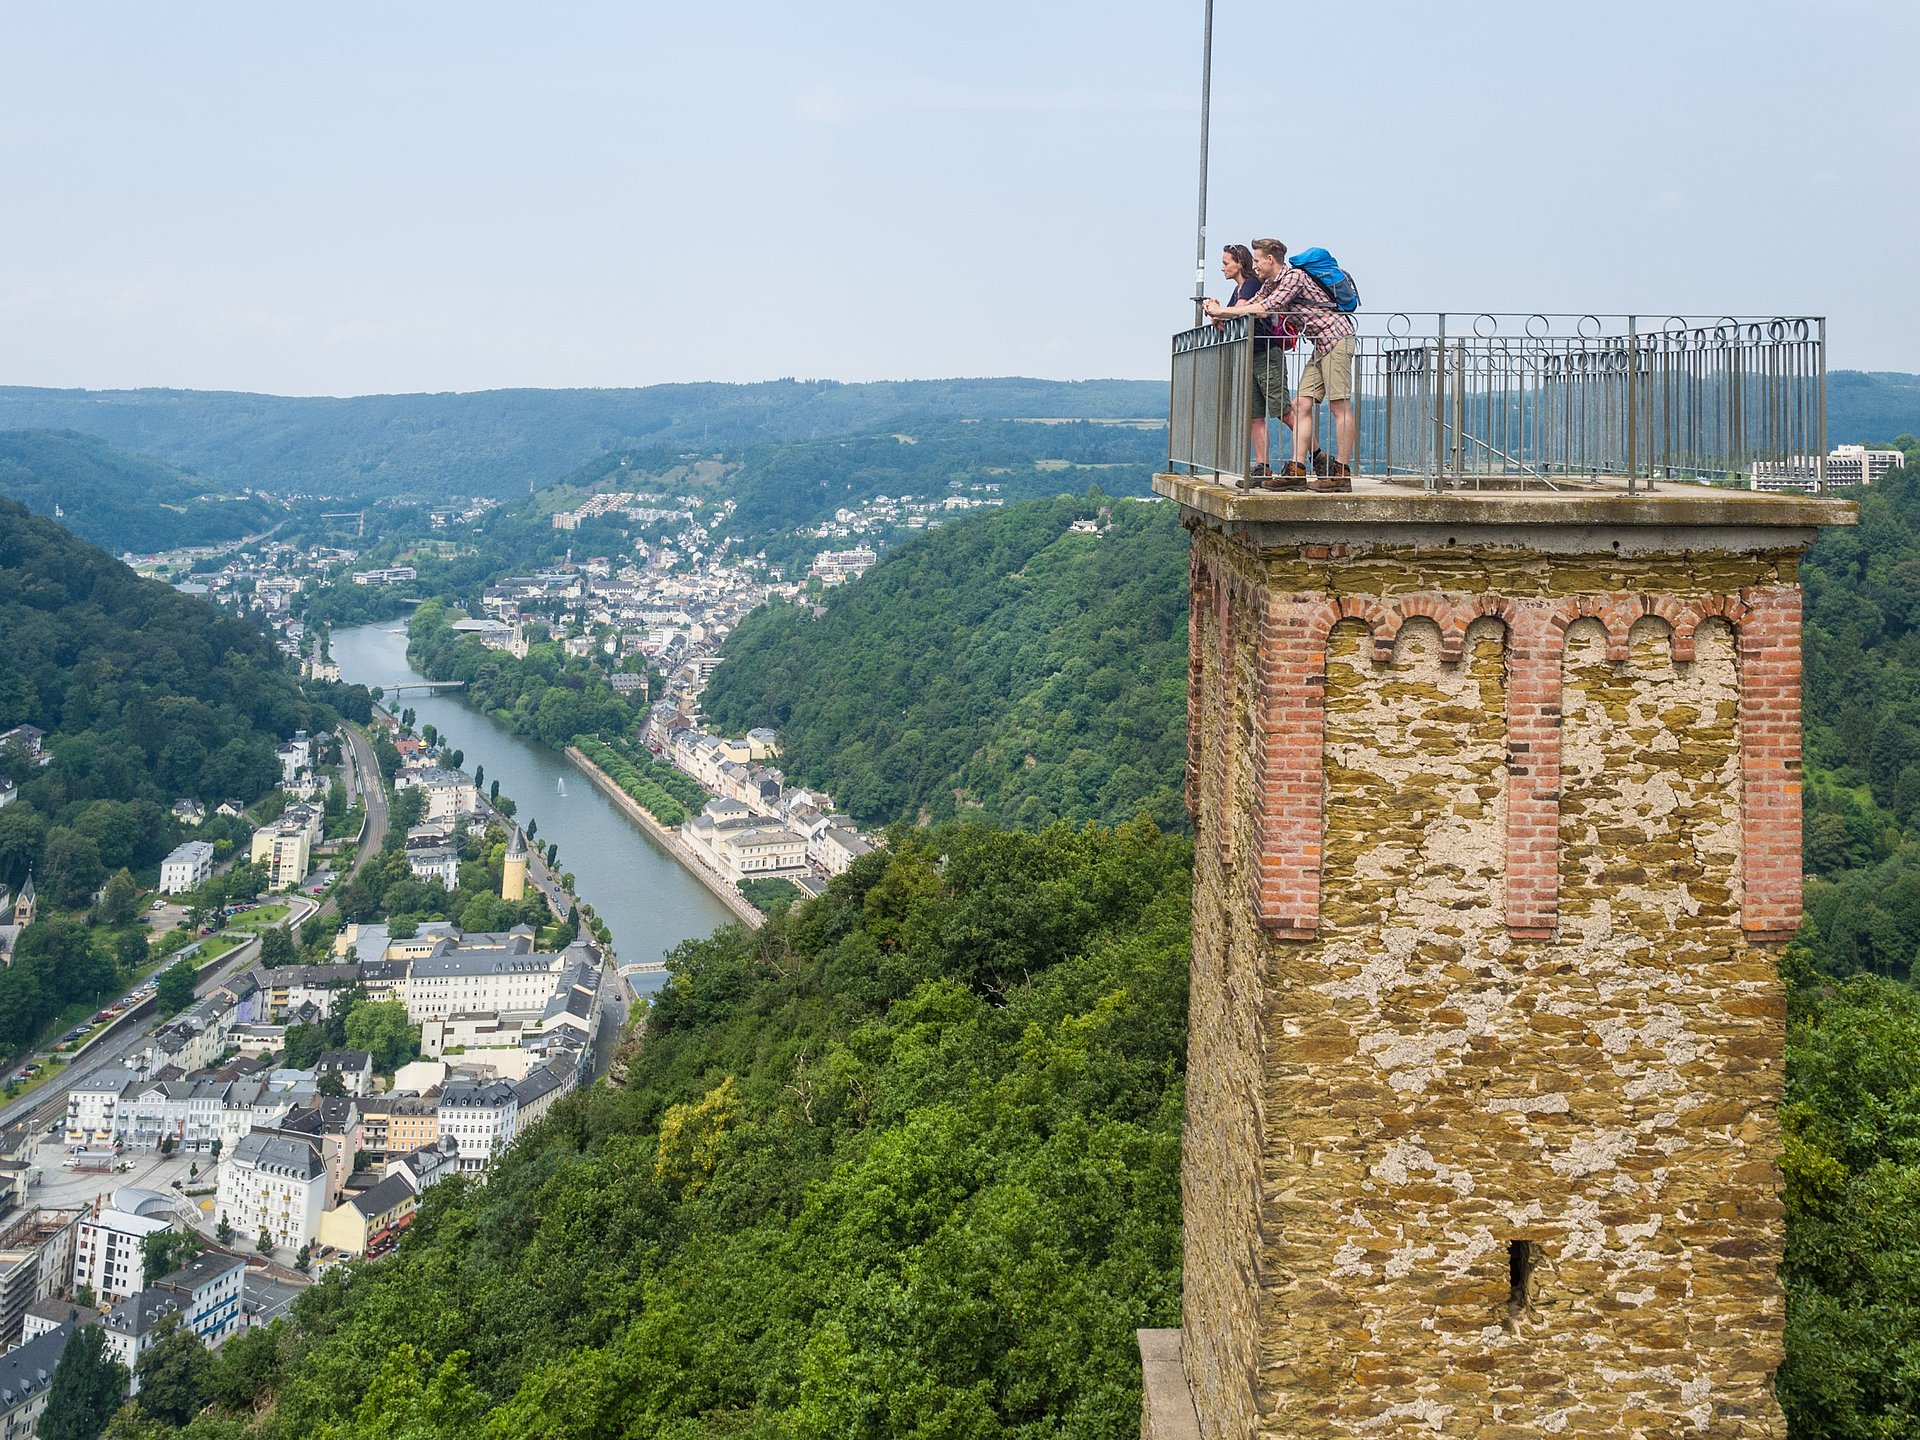 Concordia Tower in Bad Ems, Lahn valley